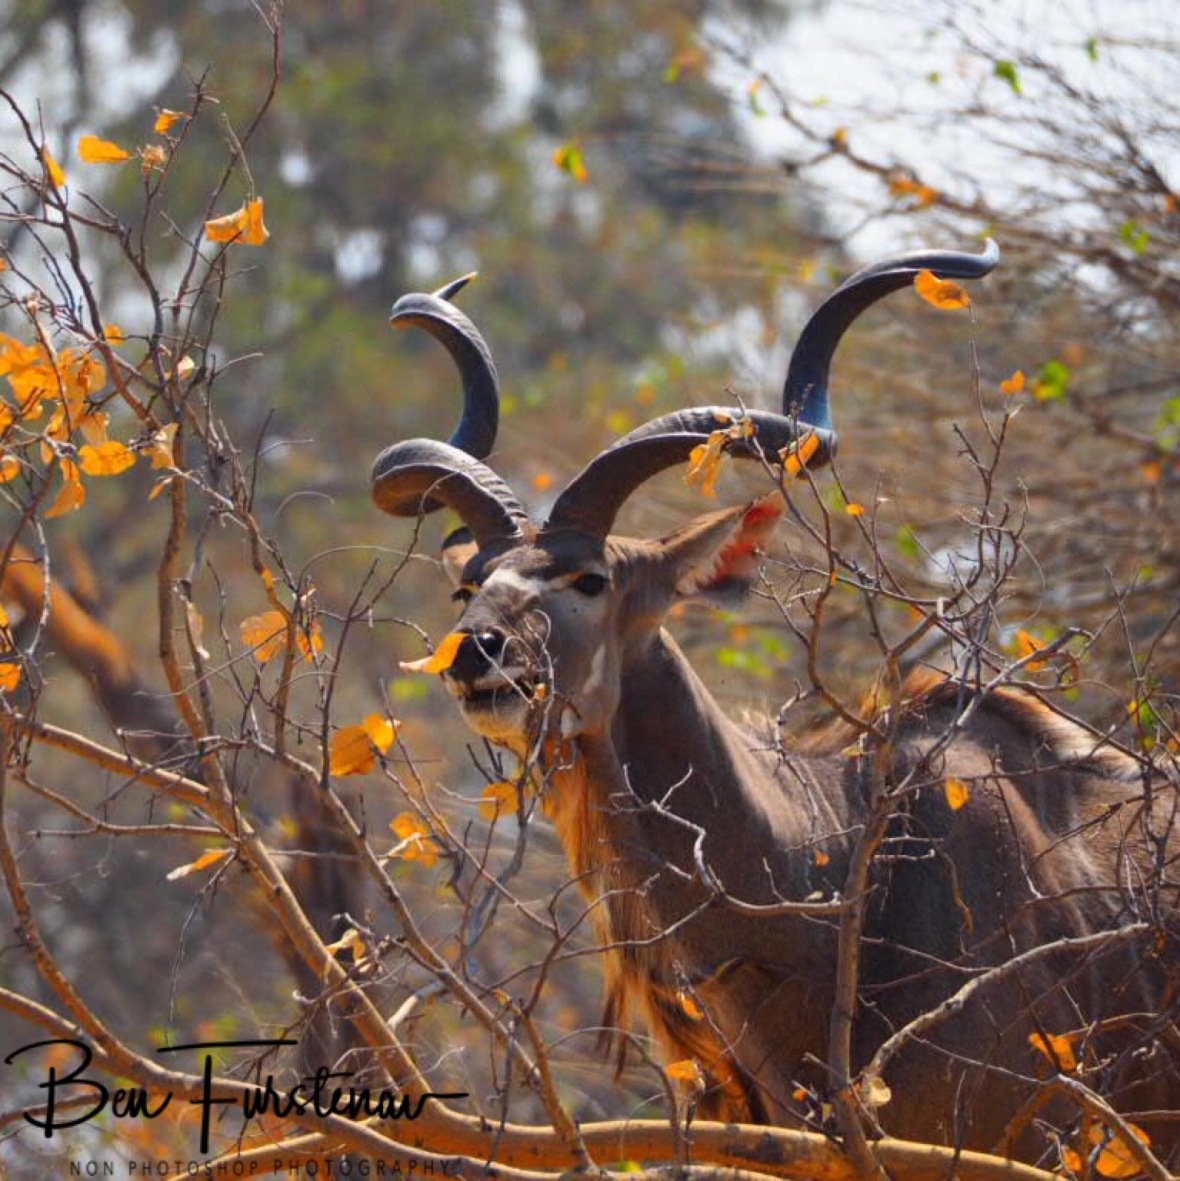 Kudu nipping carefully on bushes, Moremi National Park, Okavango Delta, Botswana